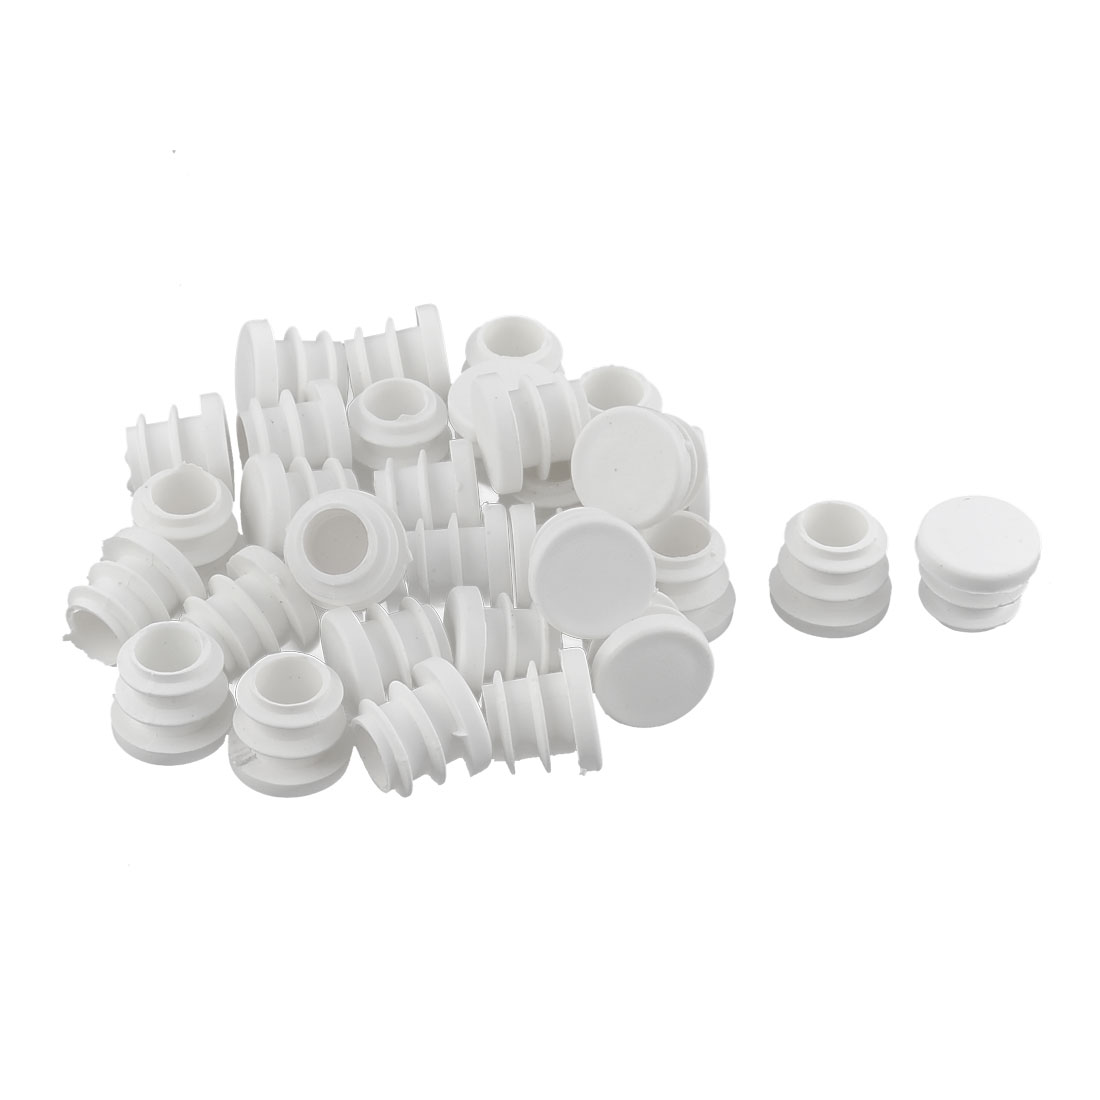 Desk Legs Plastic Round Shaped Tube Inserts End Blanking Caps White 32pcs